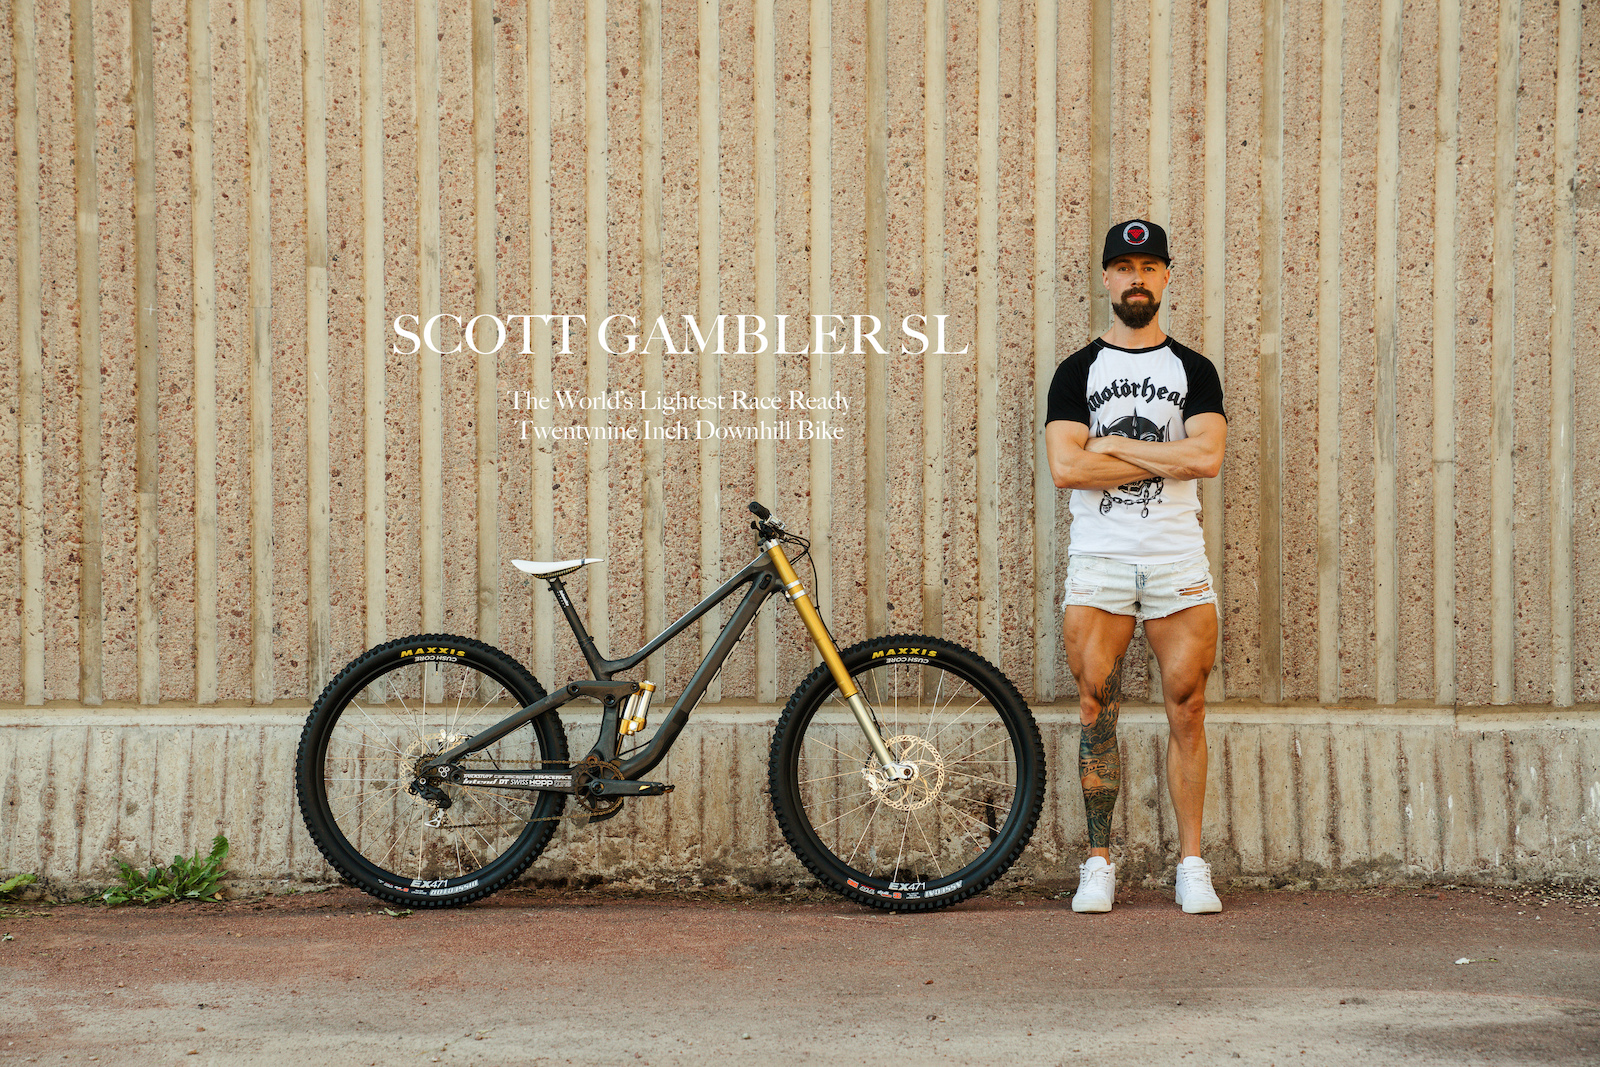 Scott Gambler world s lightest